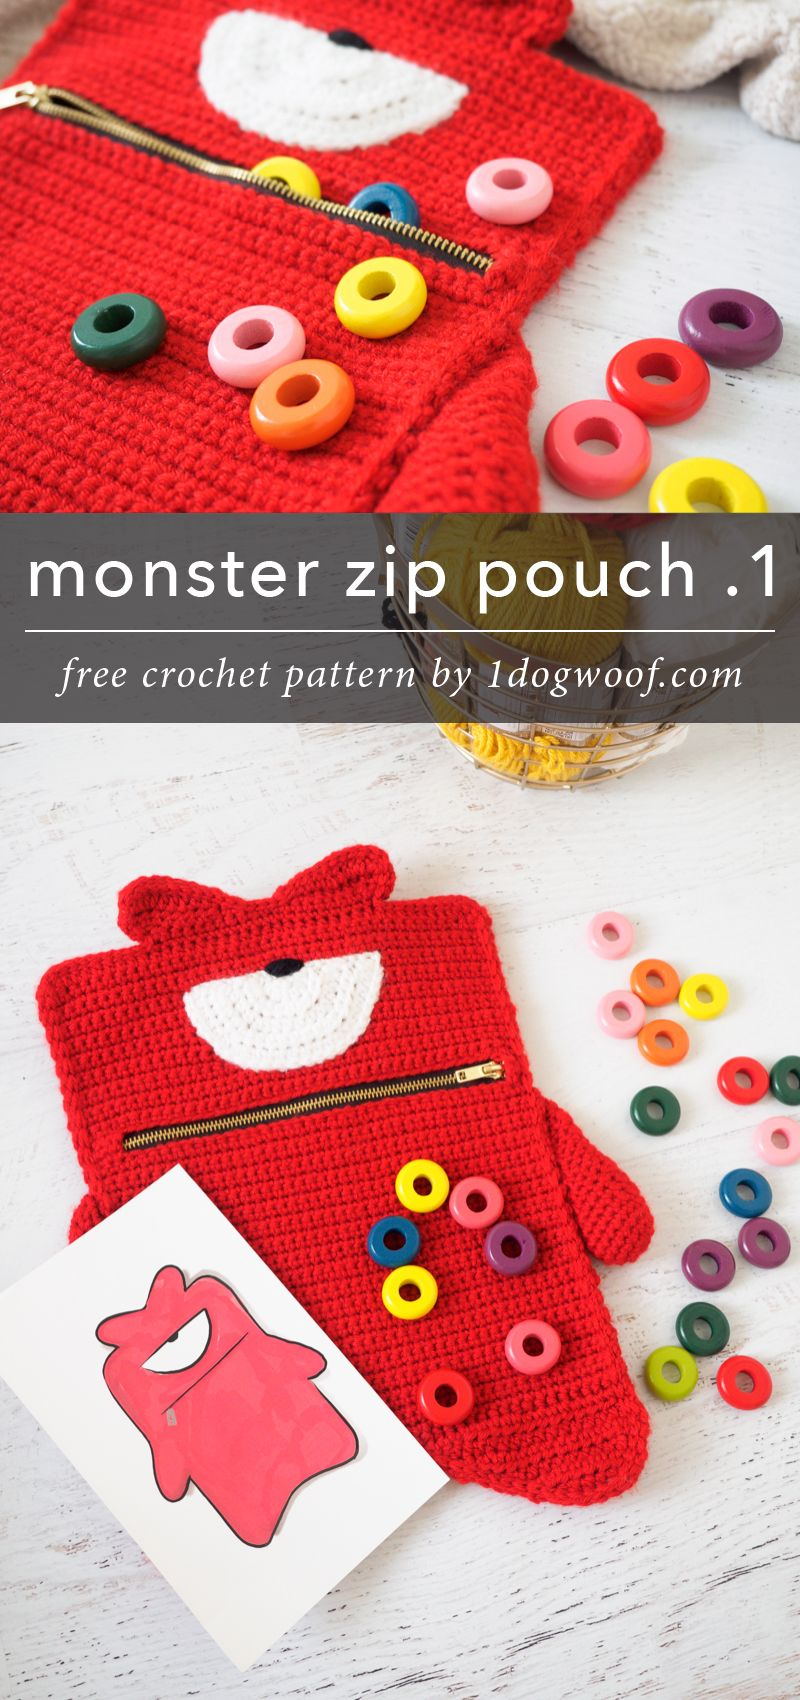 Kelvin Monster Zipper Pouch Crochet Pattern | Tasker og